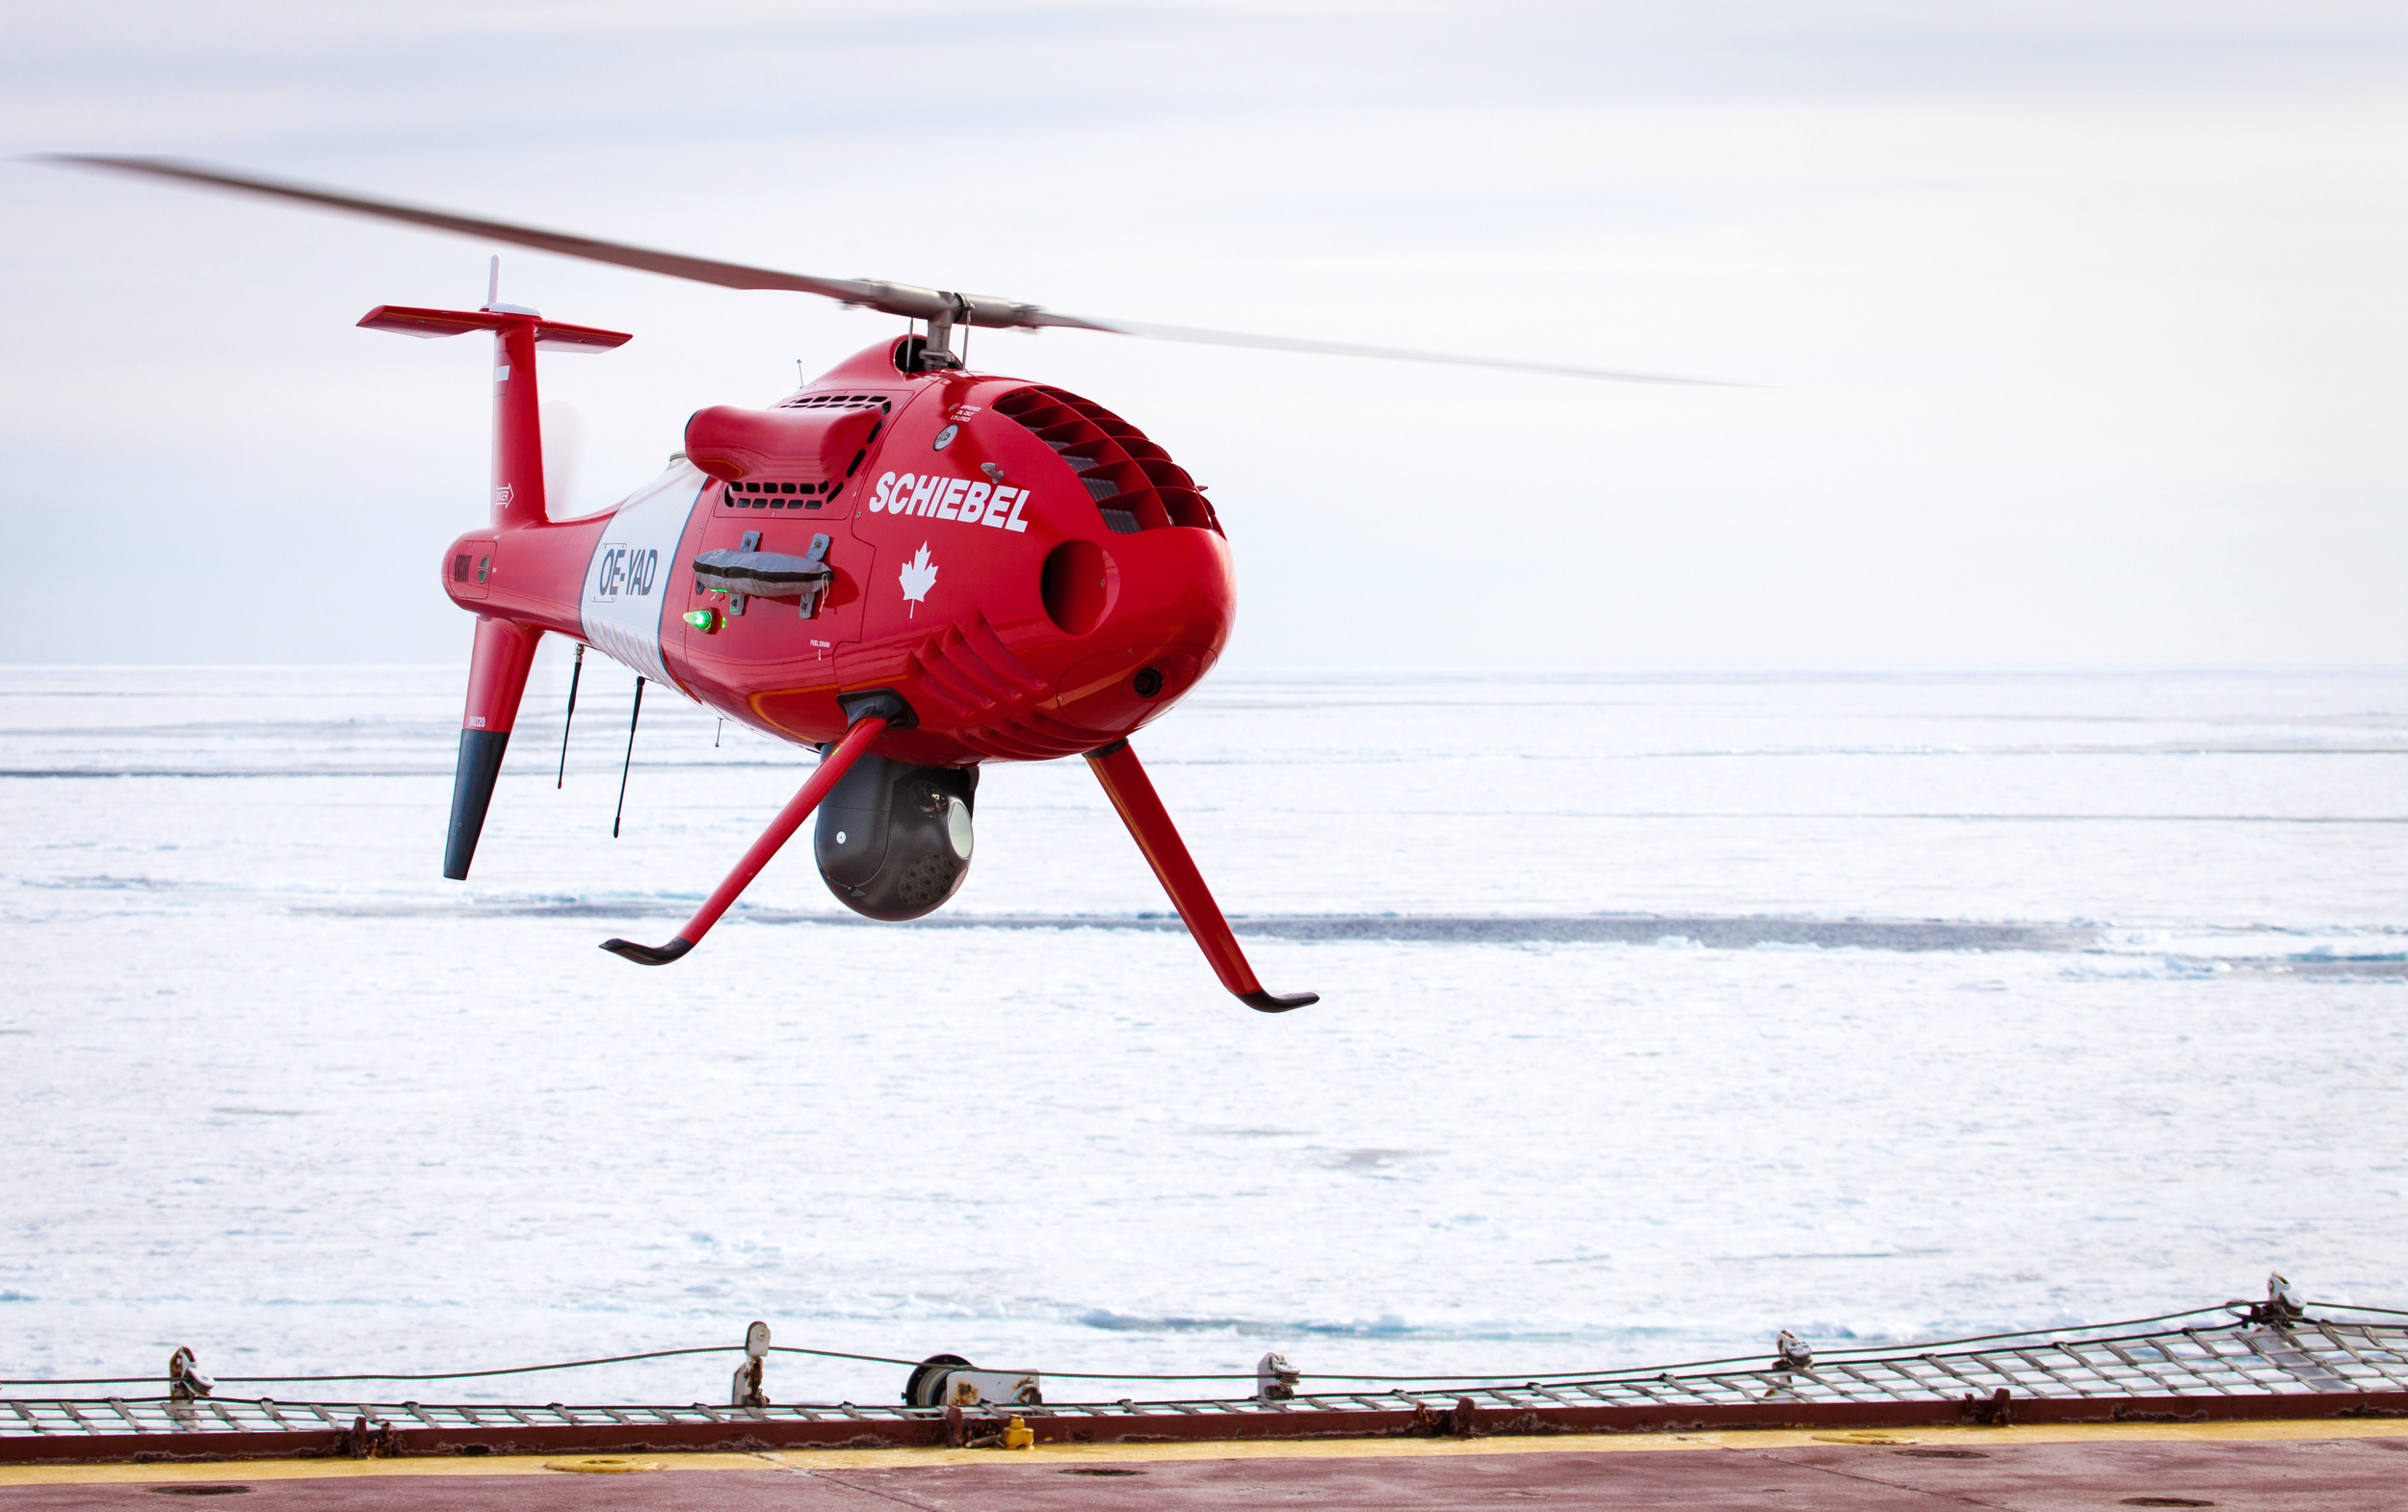 On March 28, 2016, Schiebel's Camcopter S-100 was launched from the deck of a Canadian Coast Guard vessel off the coast of Newfoundland.